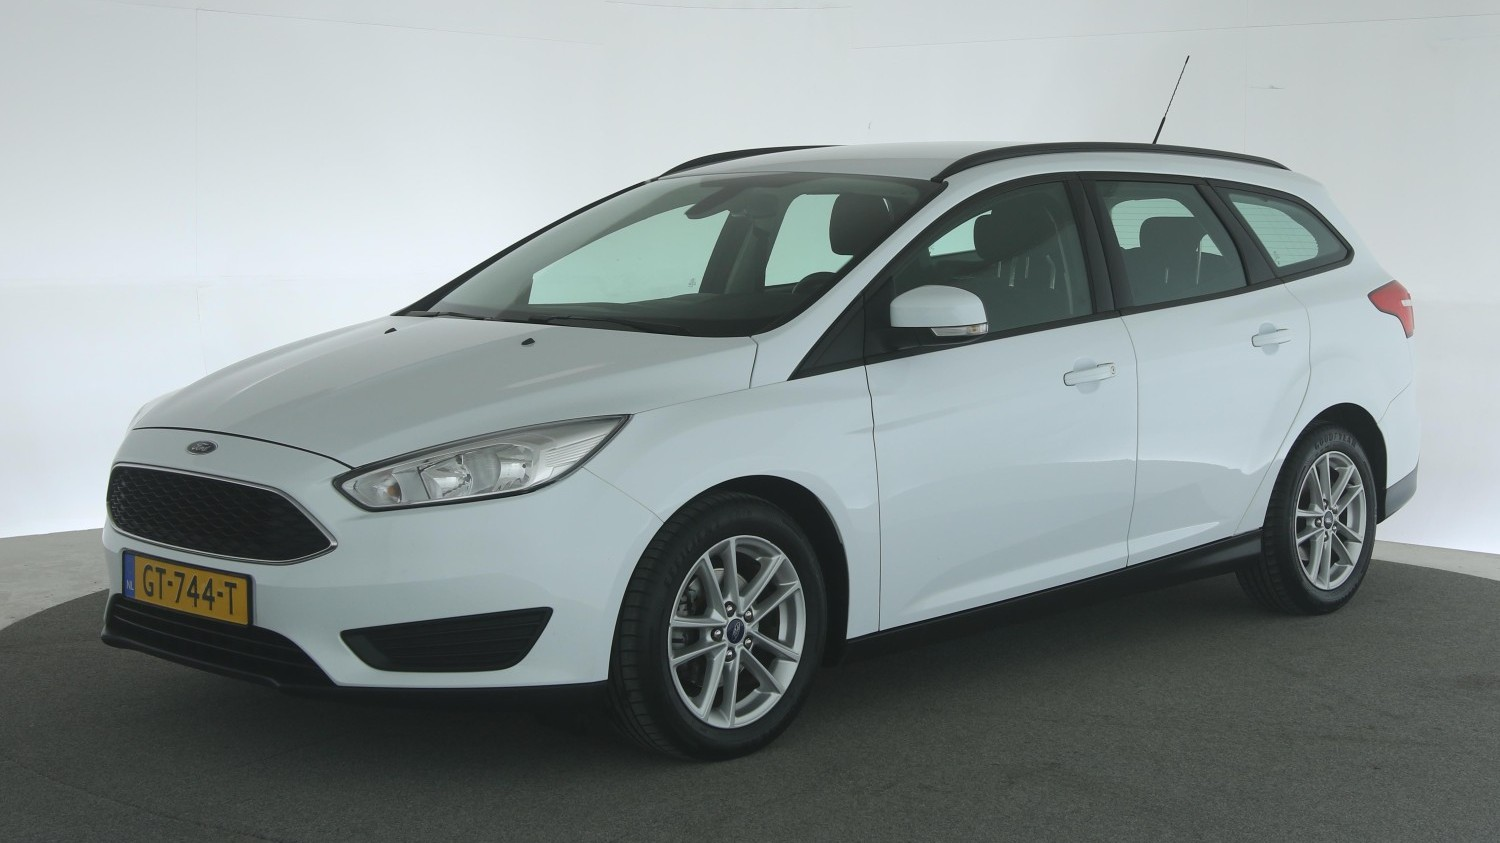 Ford Focus Station 2015 GT-744-T 1